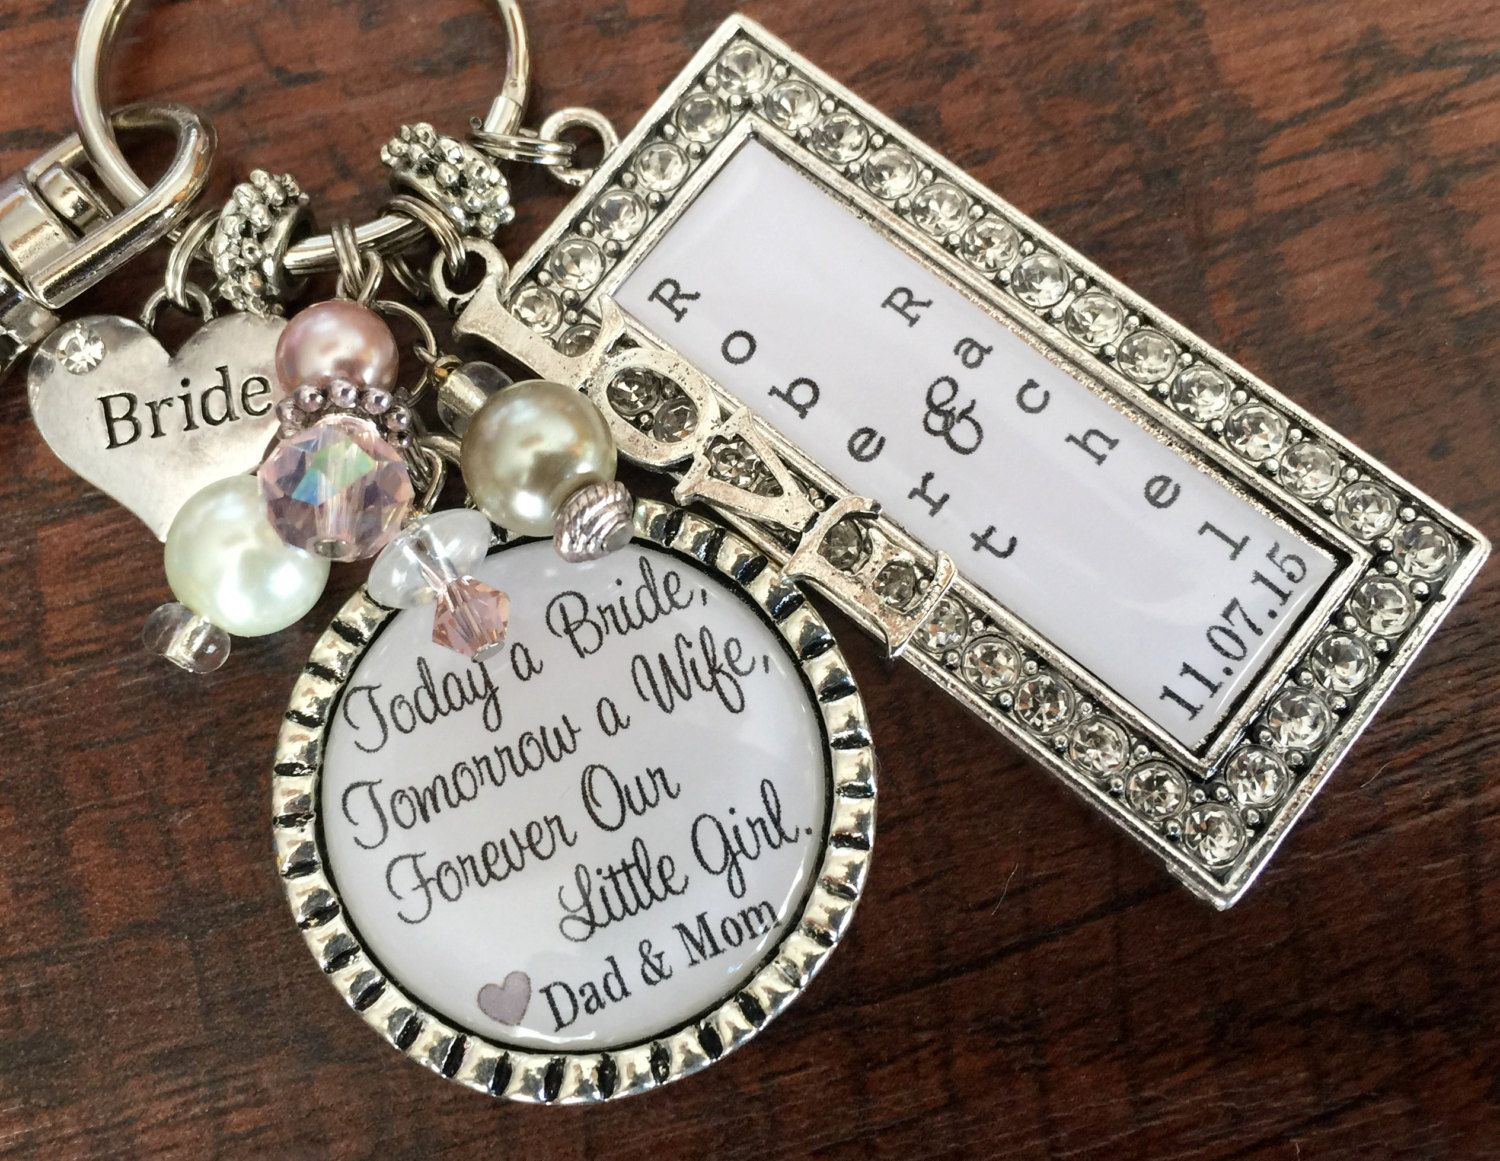 Wedding Gifts For Girl: Wedding Gift For BRIDE, Bridal Bouquet Charm, BRIDE Gift